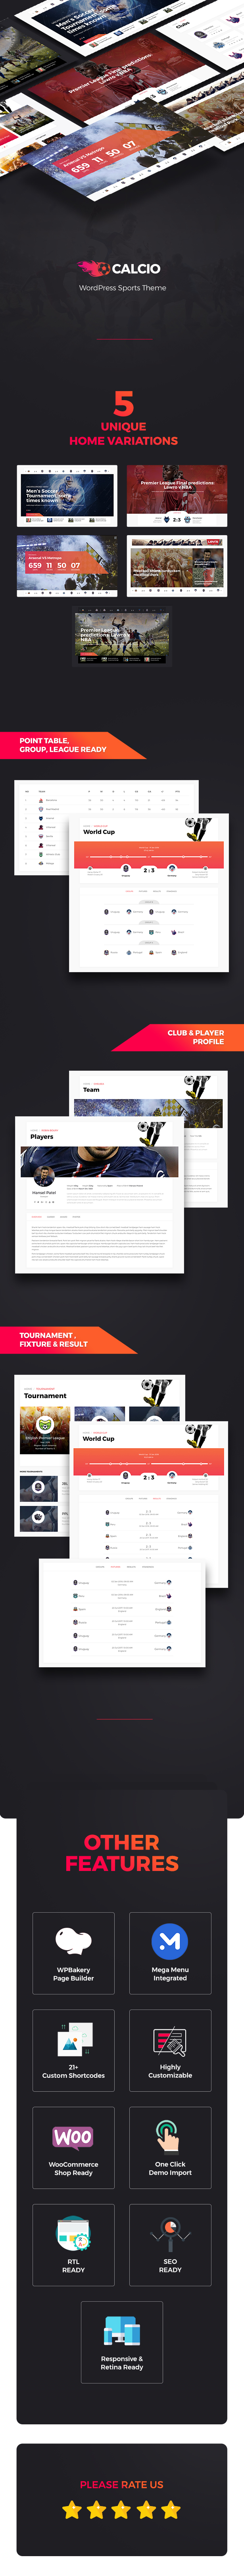 Calcio – Football & Soccer Management WordPress Theme (Nonprofit)